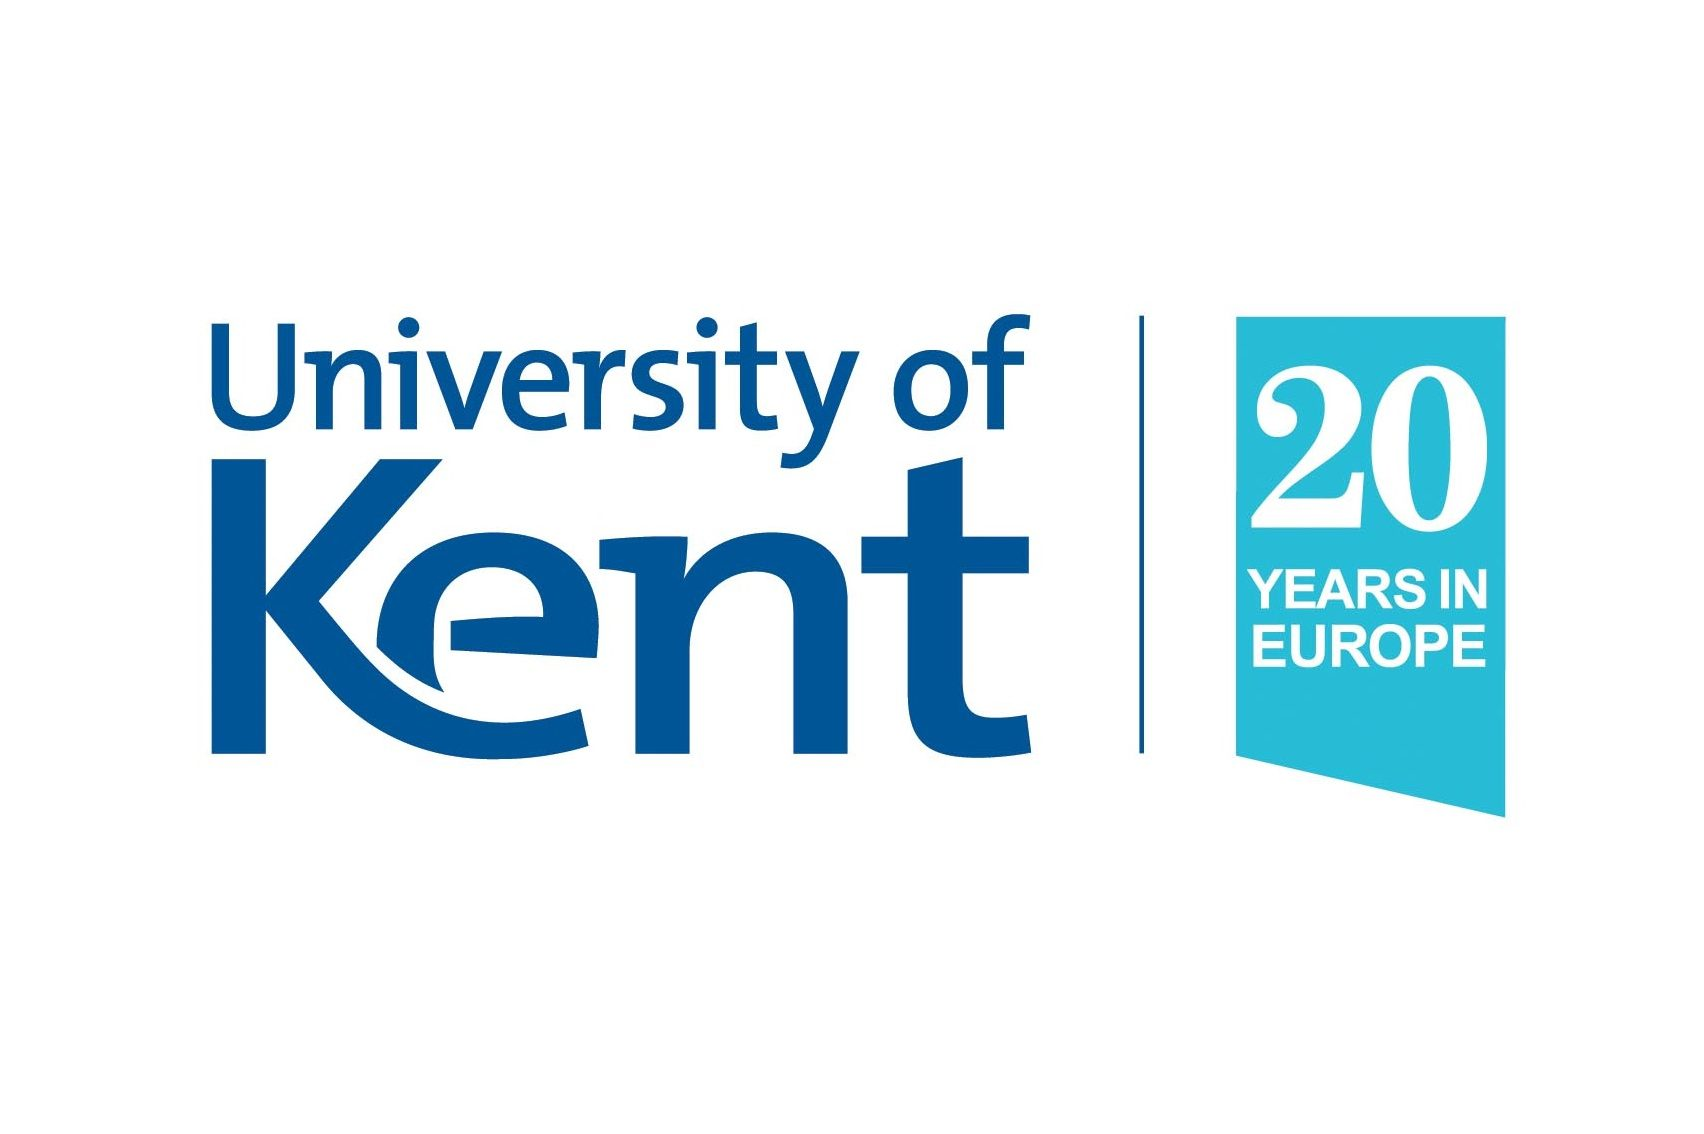 Kent celebrates 20 years in Europe